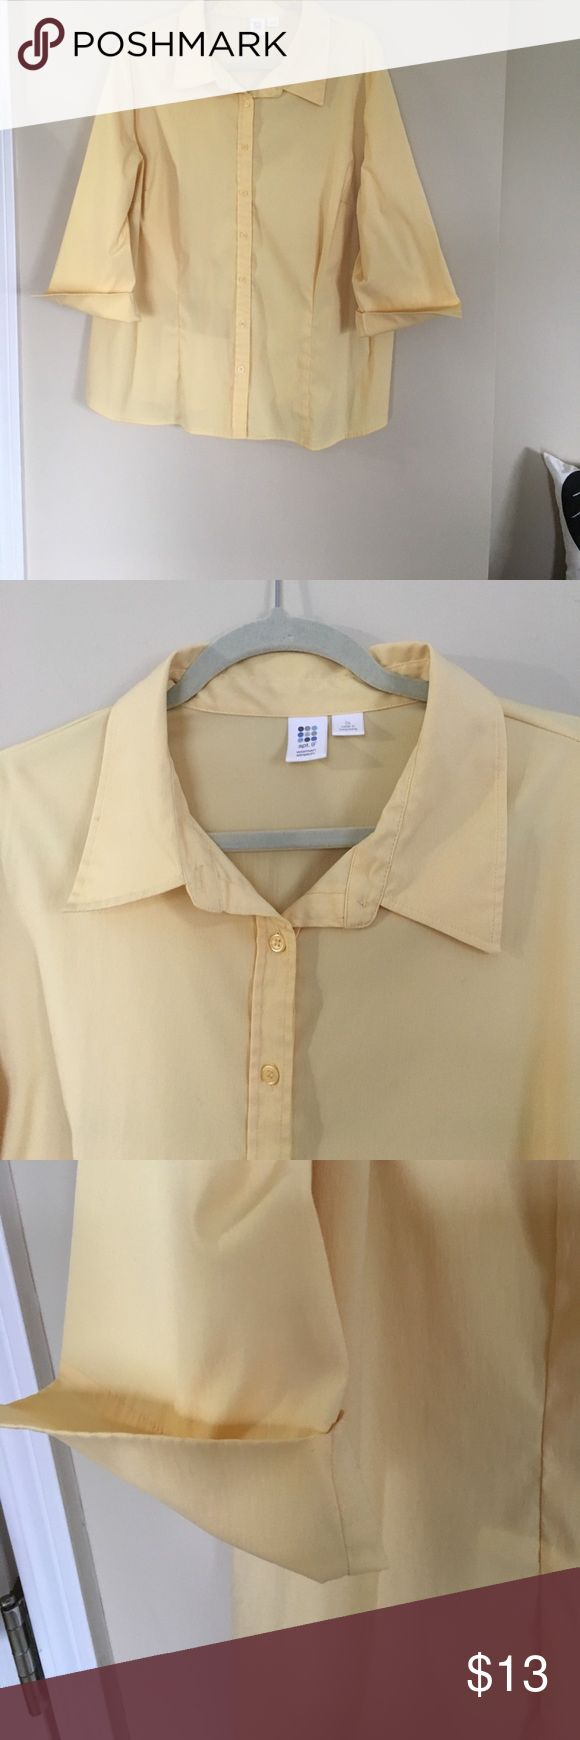 Light yellow dress shirt Great fit polyester blend light yellow 3/4 sleeve dress shirt Apt. 9 Tops Button Down Shirts